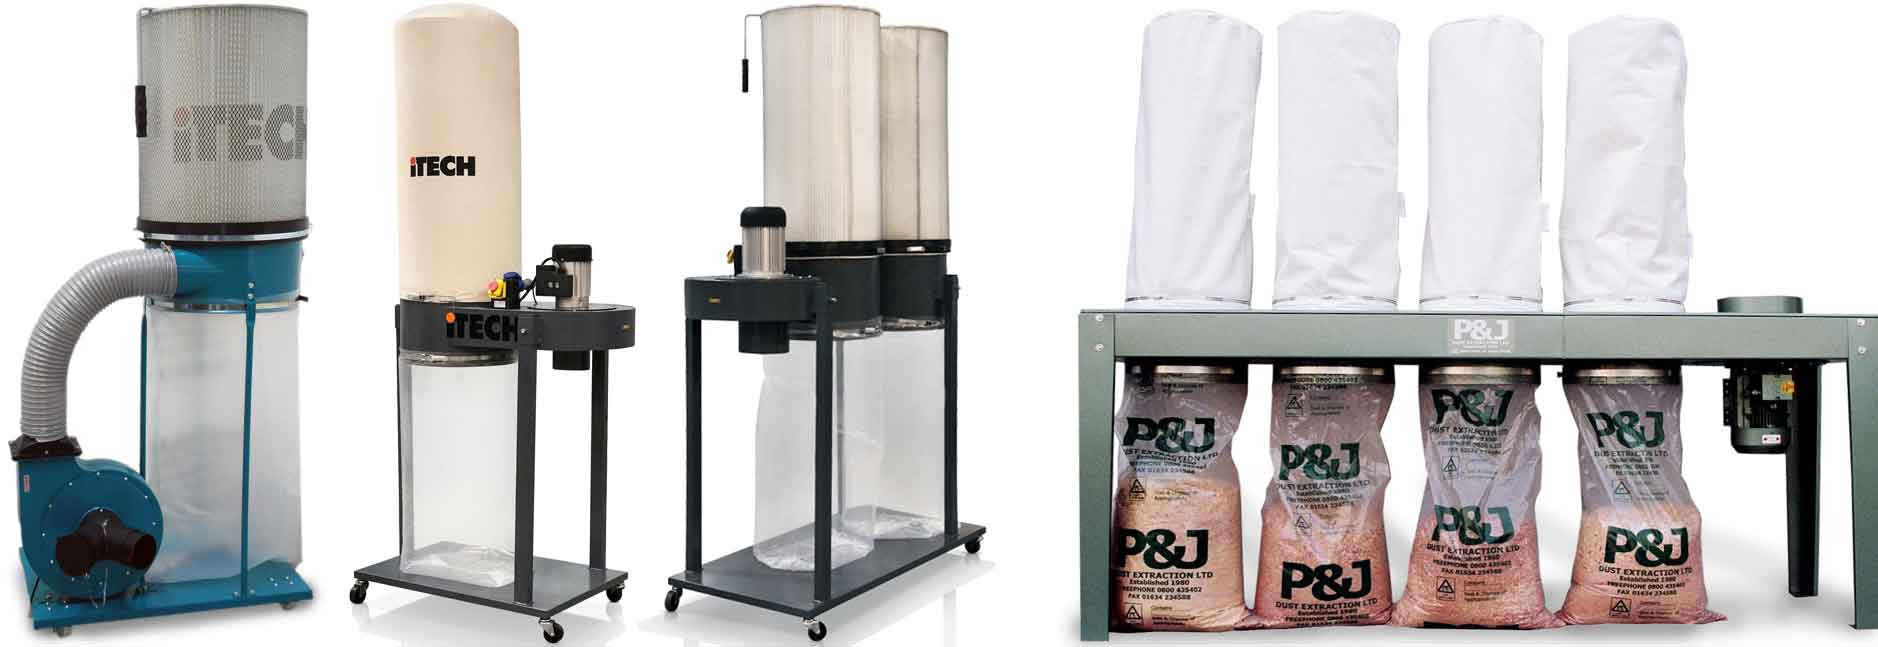 Bag Dust Extractor Systems